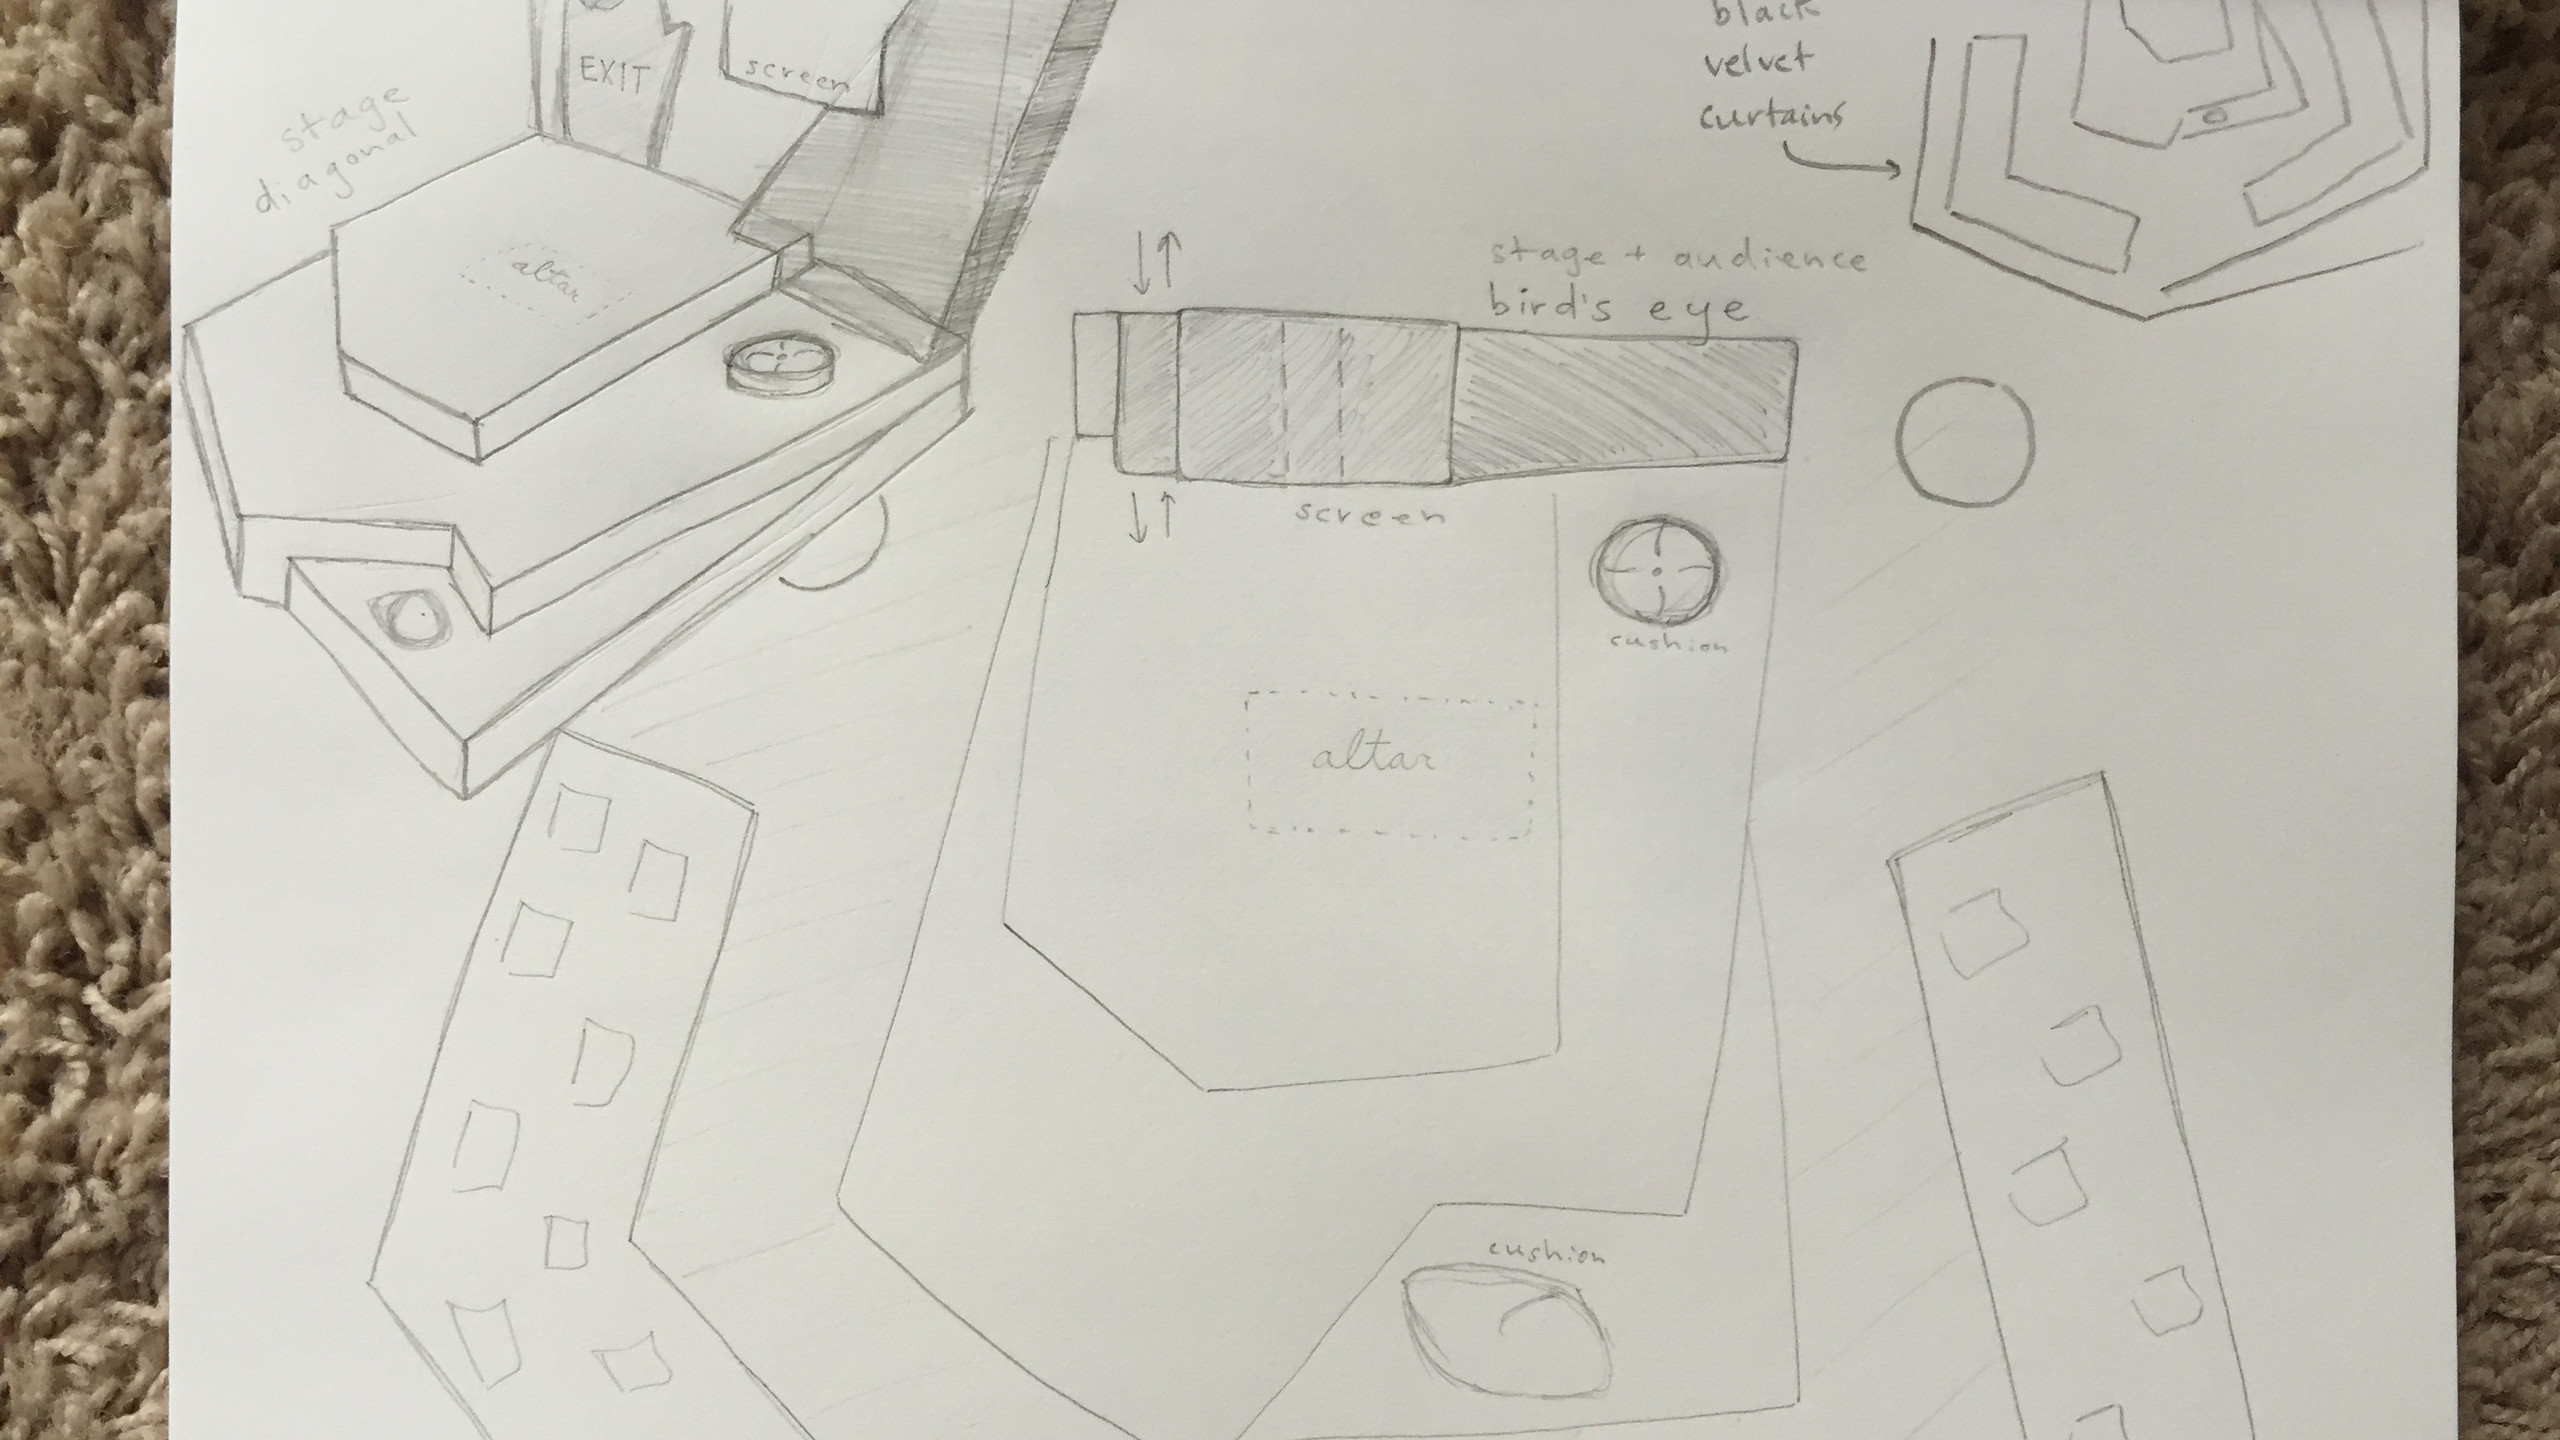 Here are other perspectives of my design.